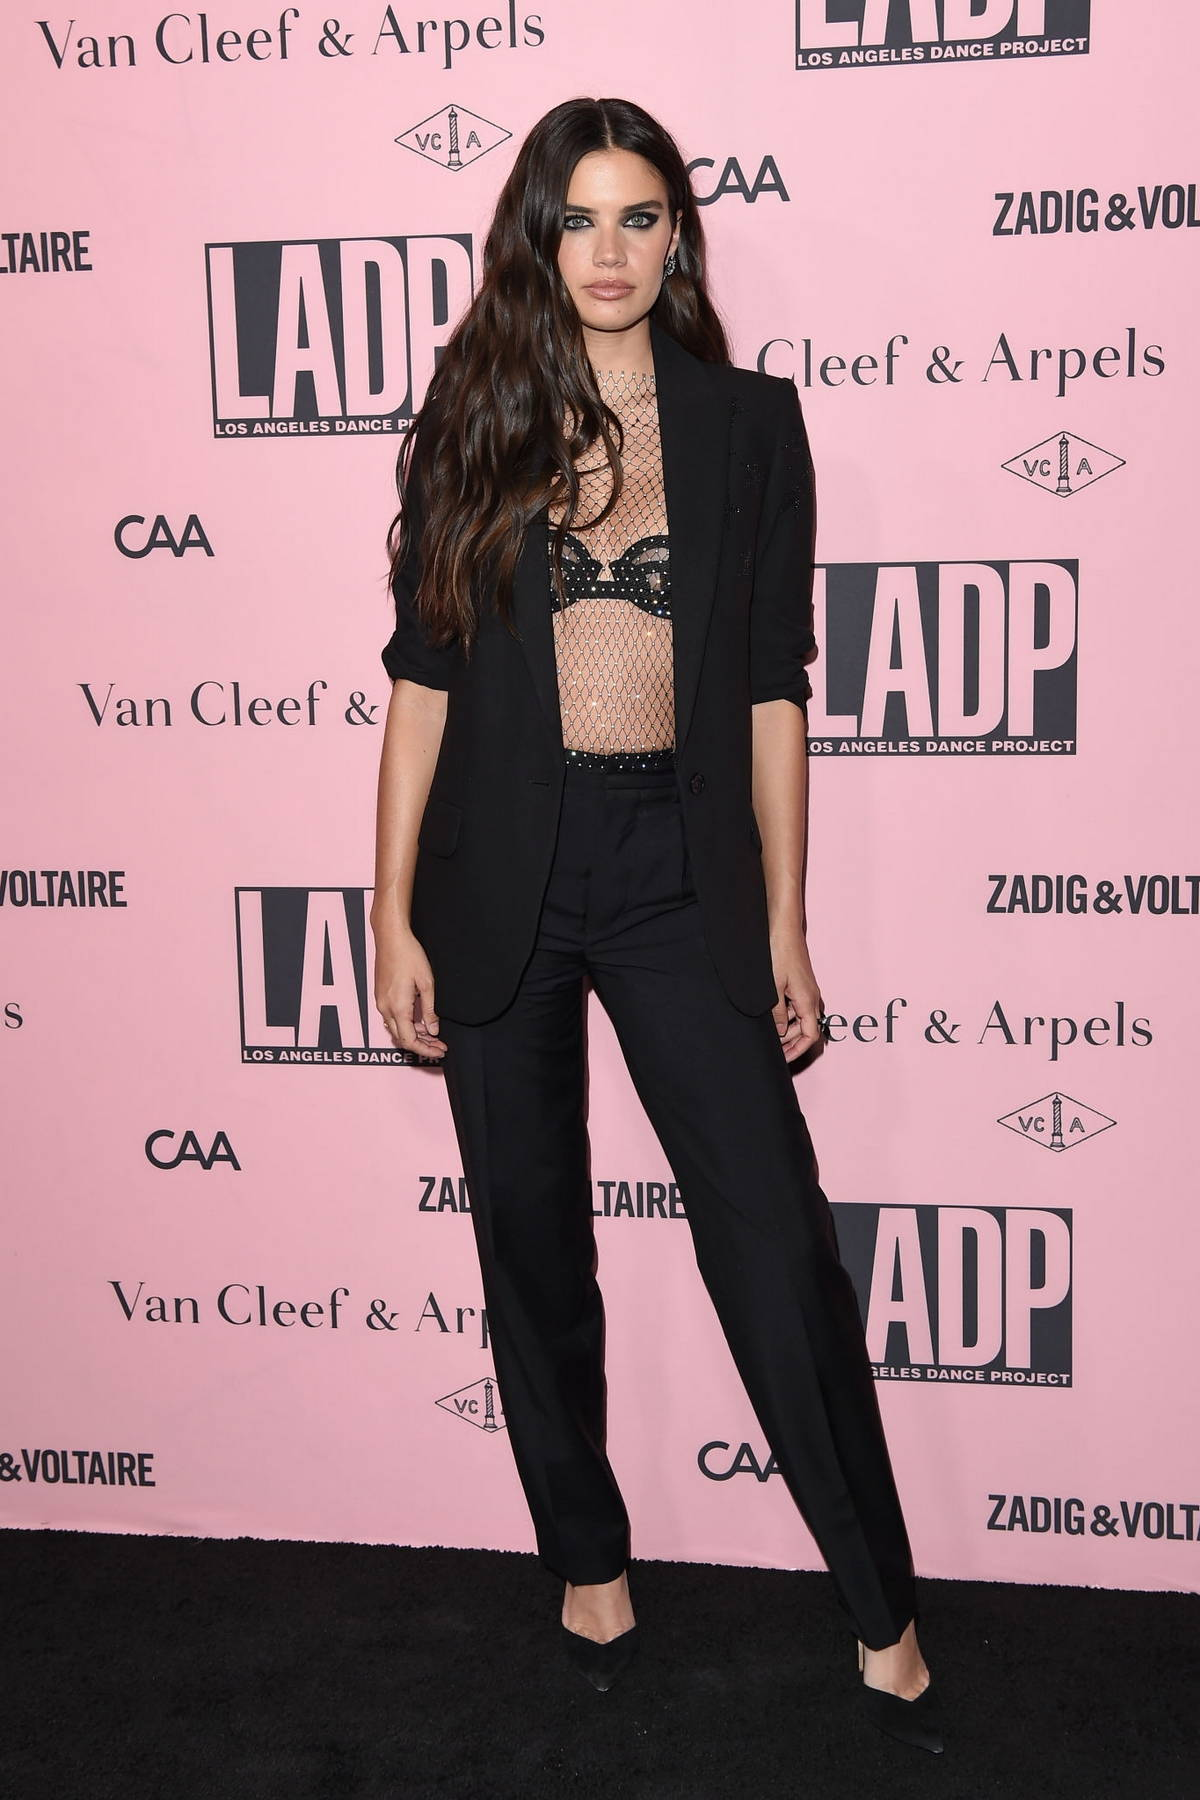 Sara Sampaio attends the Unforgettable Evening Under The Stars to Benefit LA Dance Project in Los Angeles